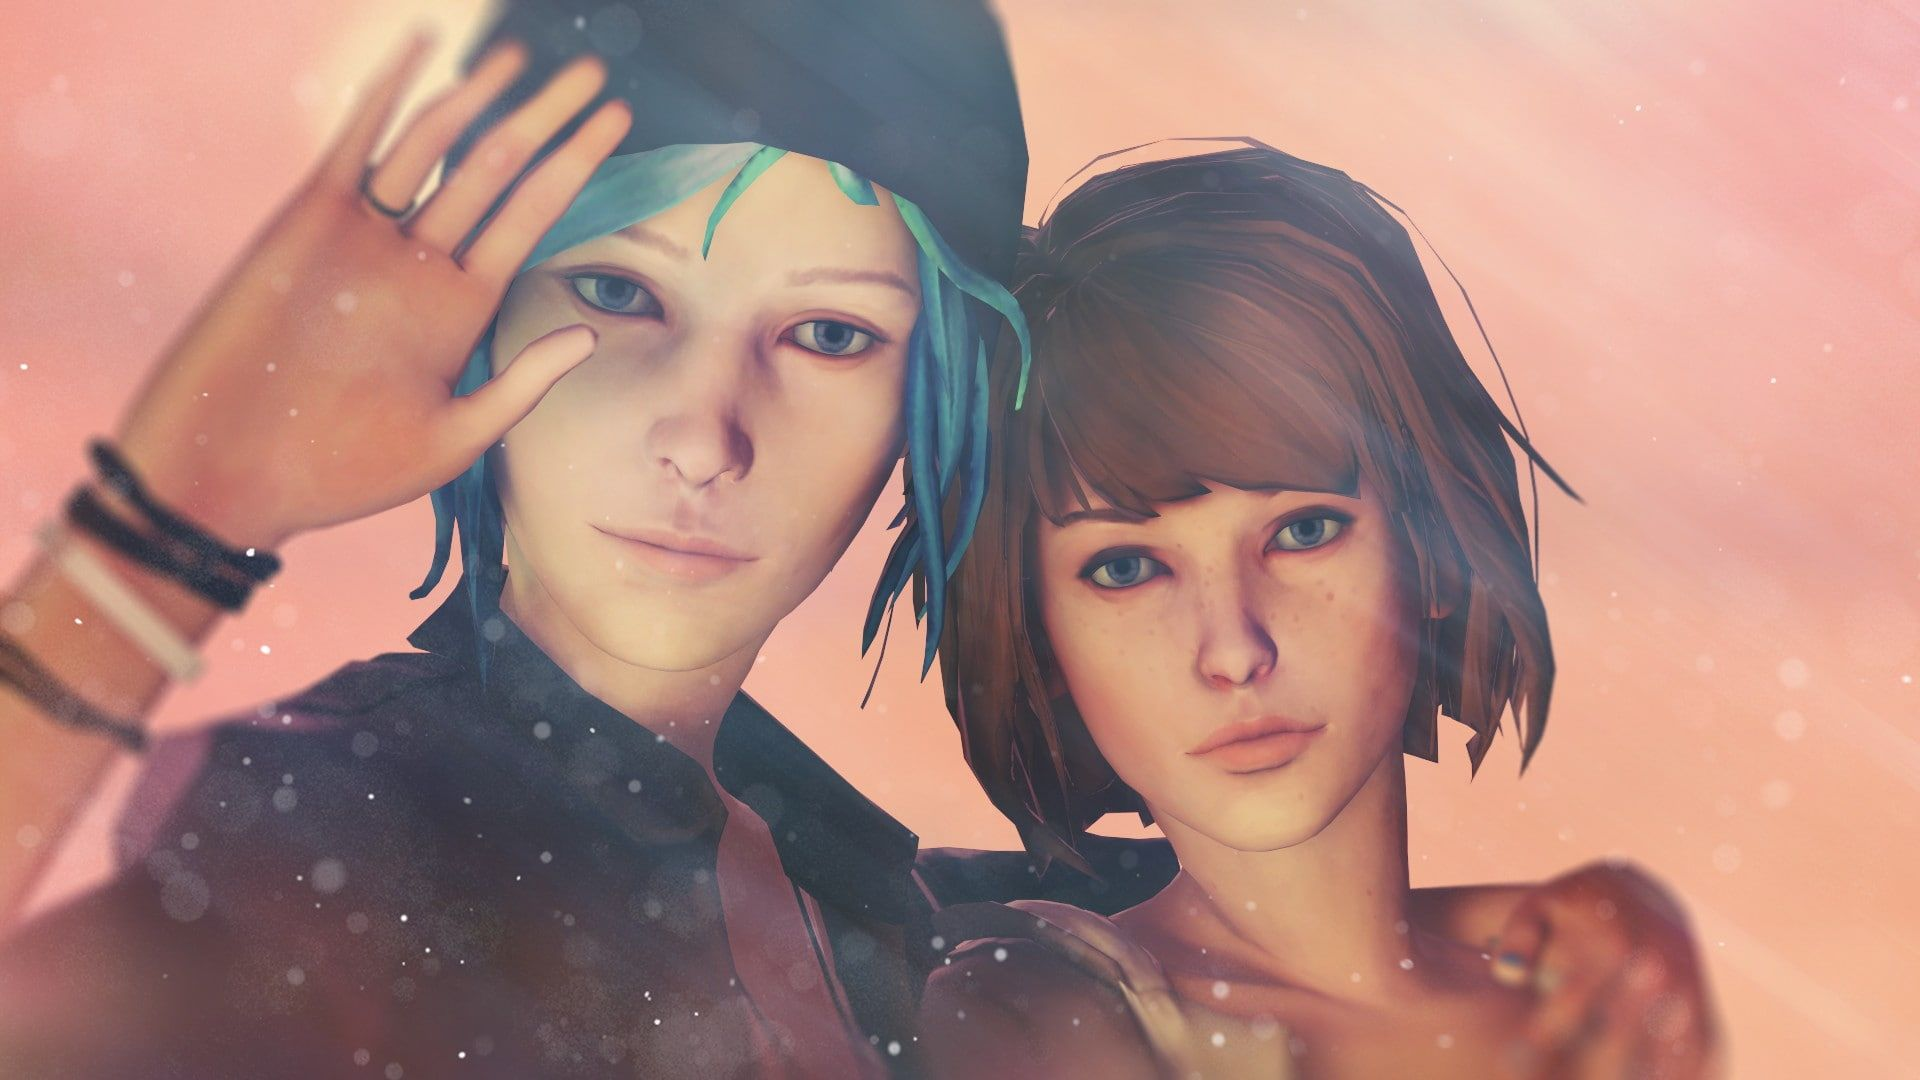 Life Is Strange Max Caulfield Chloe Price 1080p Wallpaper Hdwallpaper Desktop In 2020 Life Is Strange Strange Life Is Strange Wallpaper